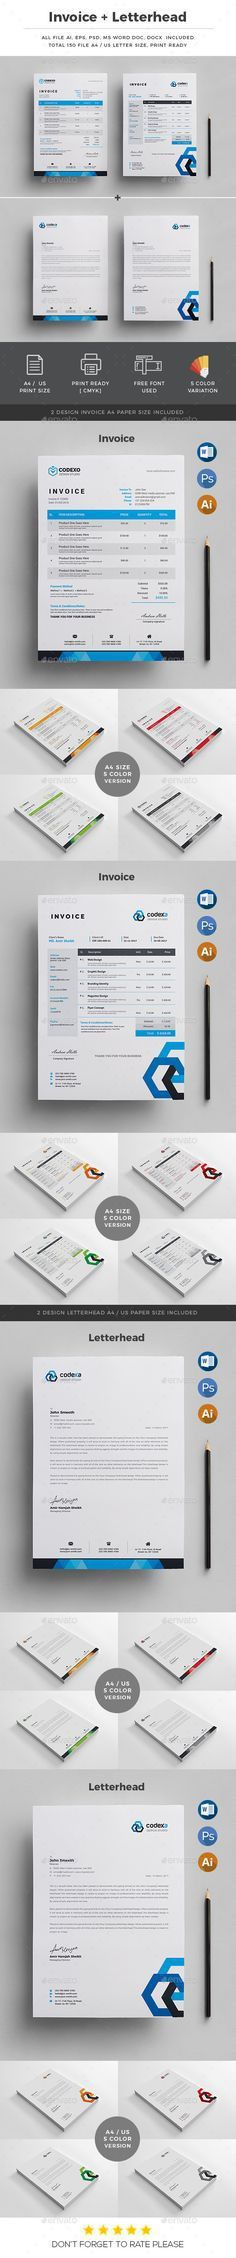 Invoice with Letterhead | Stationery, Proposals and Letterhead